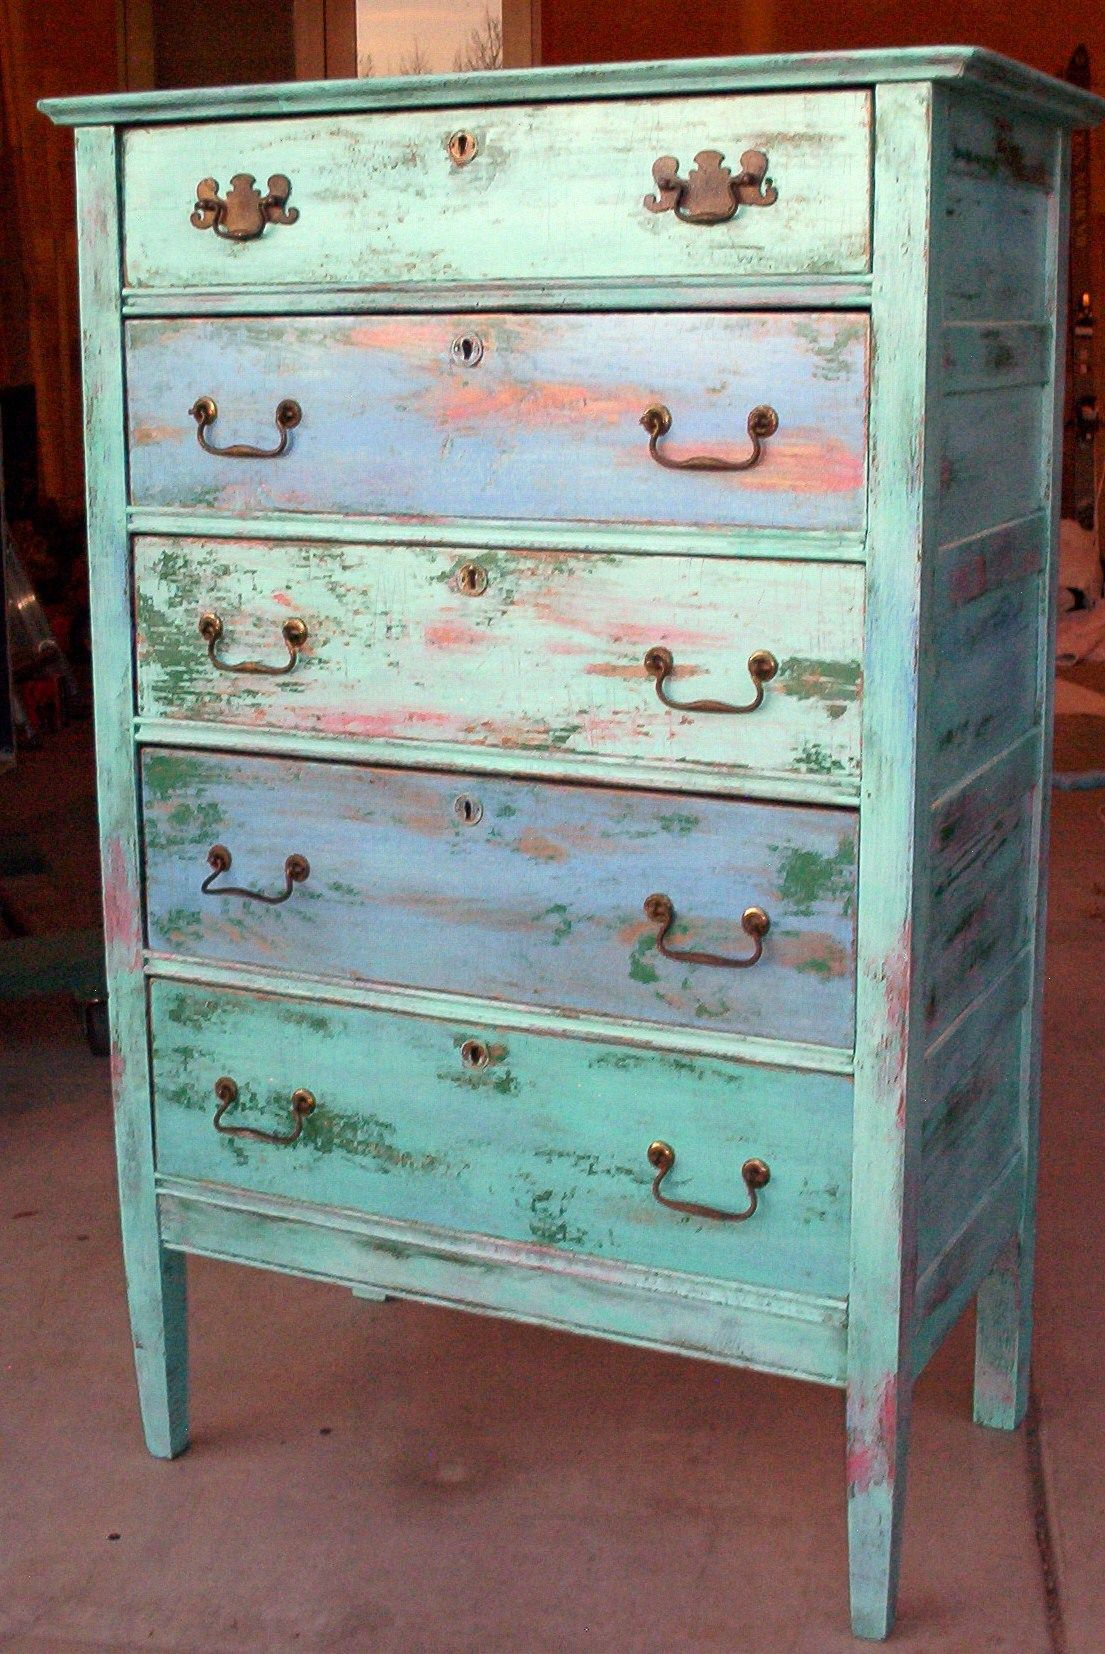 Shabby Chic Furniture Sale Cheap: Sunset Colors On Shabby Chic Dresser By Sally Hazlett